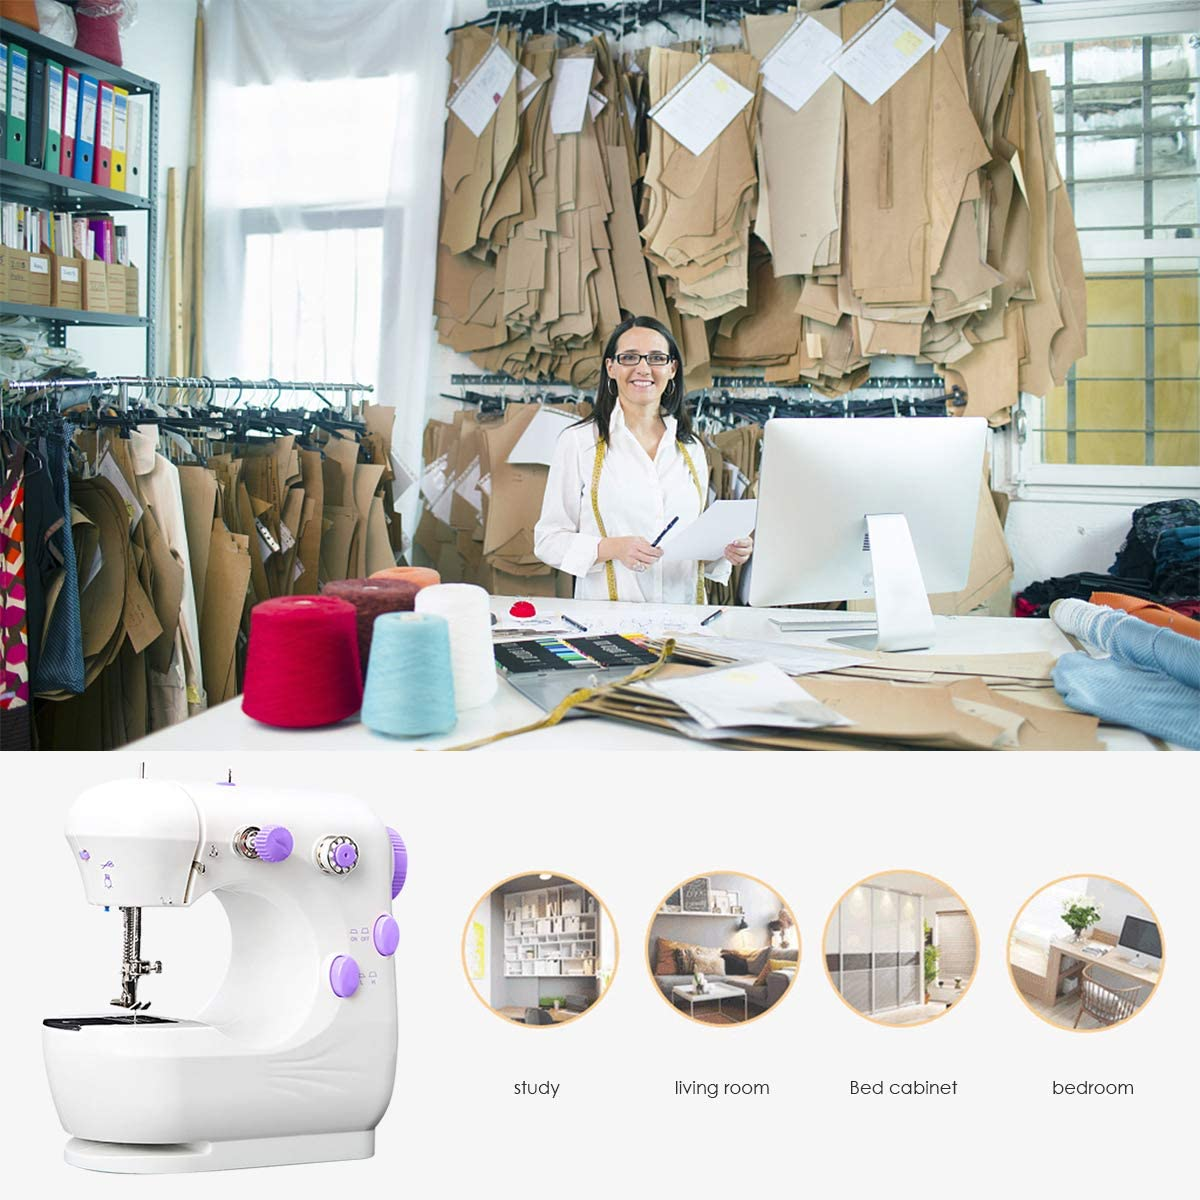 iFCOW Sewing Machine Electric Sewing Machine Multi-Function Portable Crafting Sewing Machine with Foot Pedal 2-Speed Adjustable